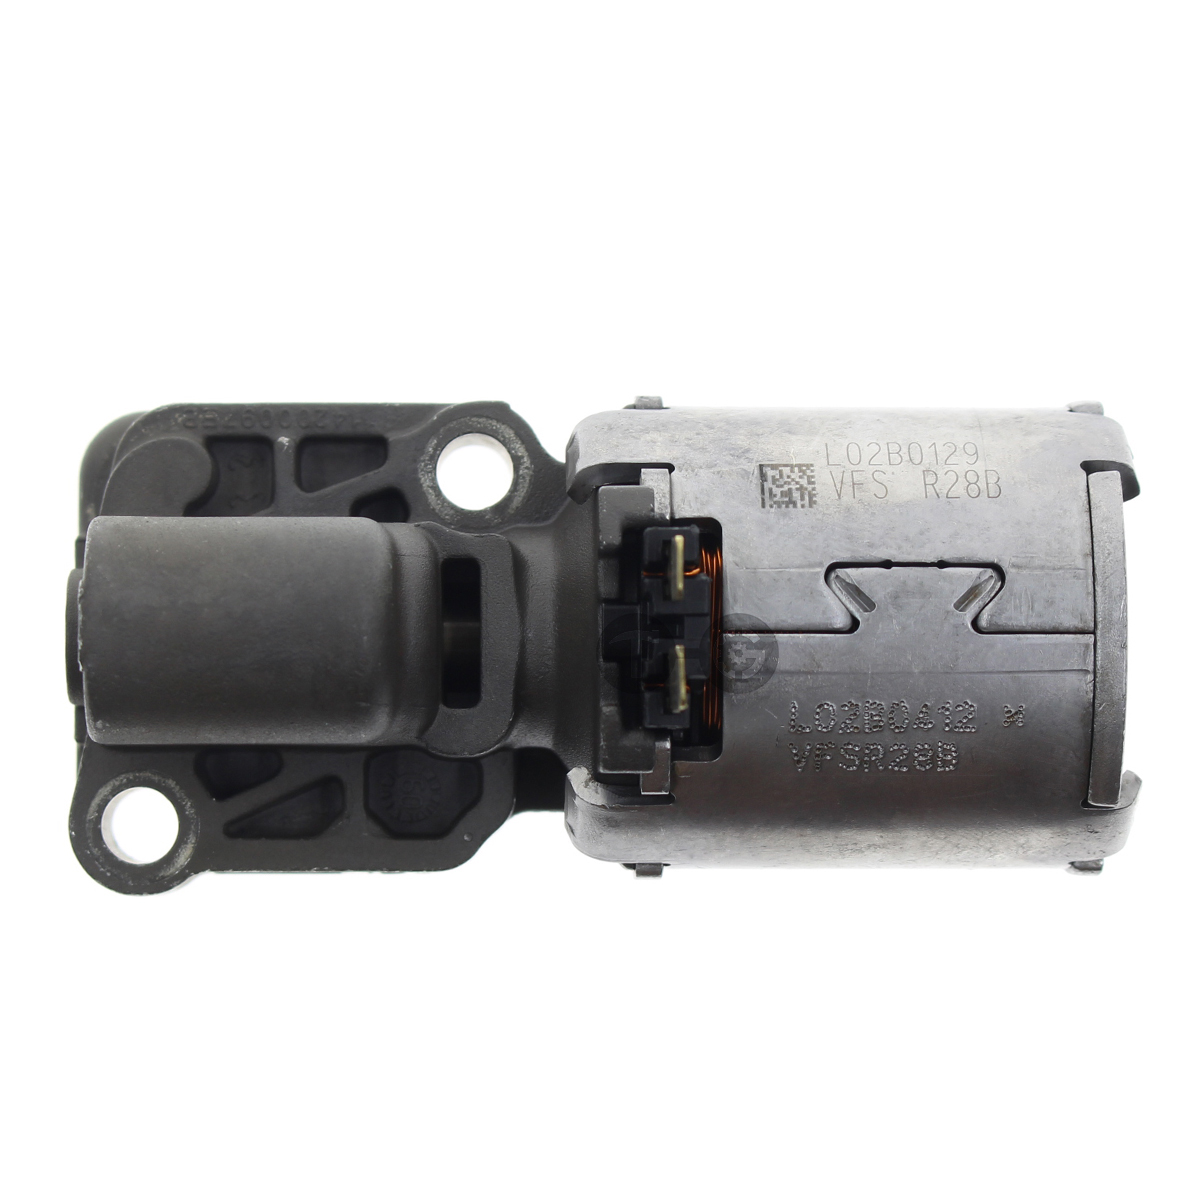 Oem Automatic Transmission Solenoid For 6 Speed Audi A3 Tt